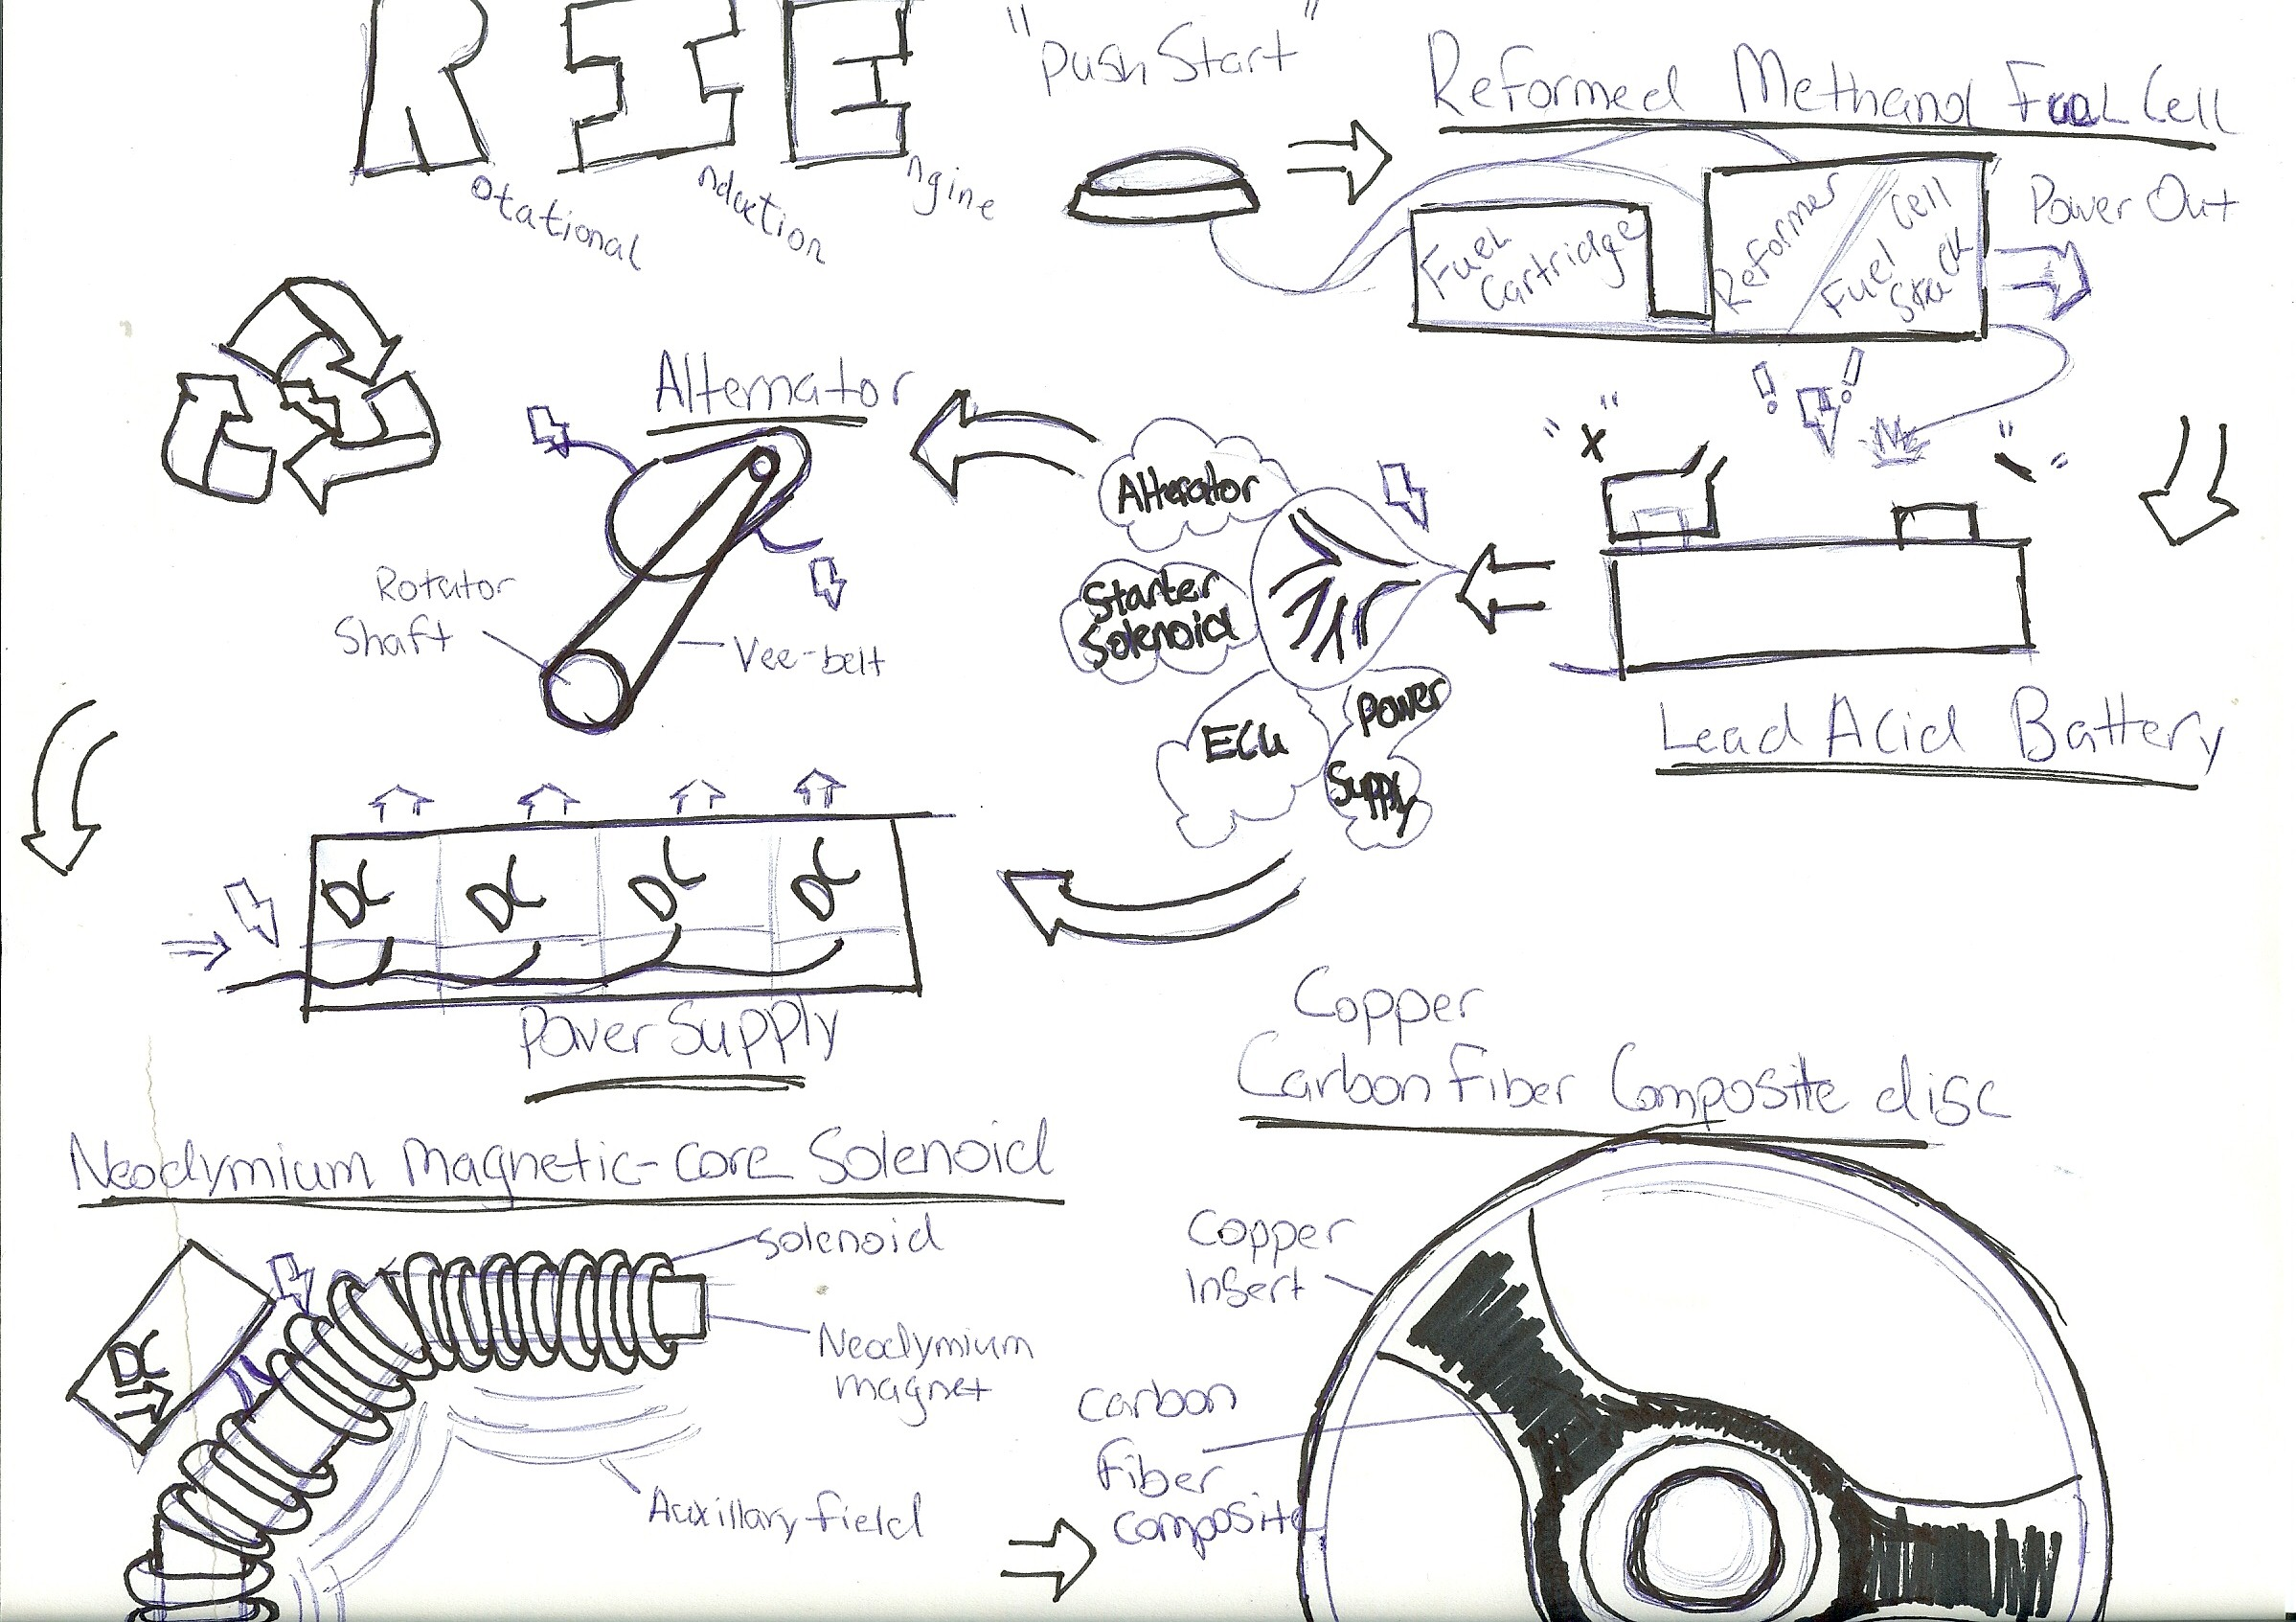 Mag Engine Create The Future Design Contest Combustion Diagram Due To Incomplete Of Carbonaceous Fuel Internal Engines Emit Air Pollutants Called Particular Matter